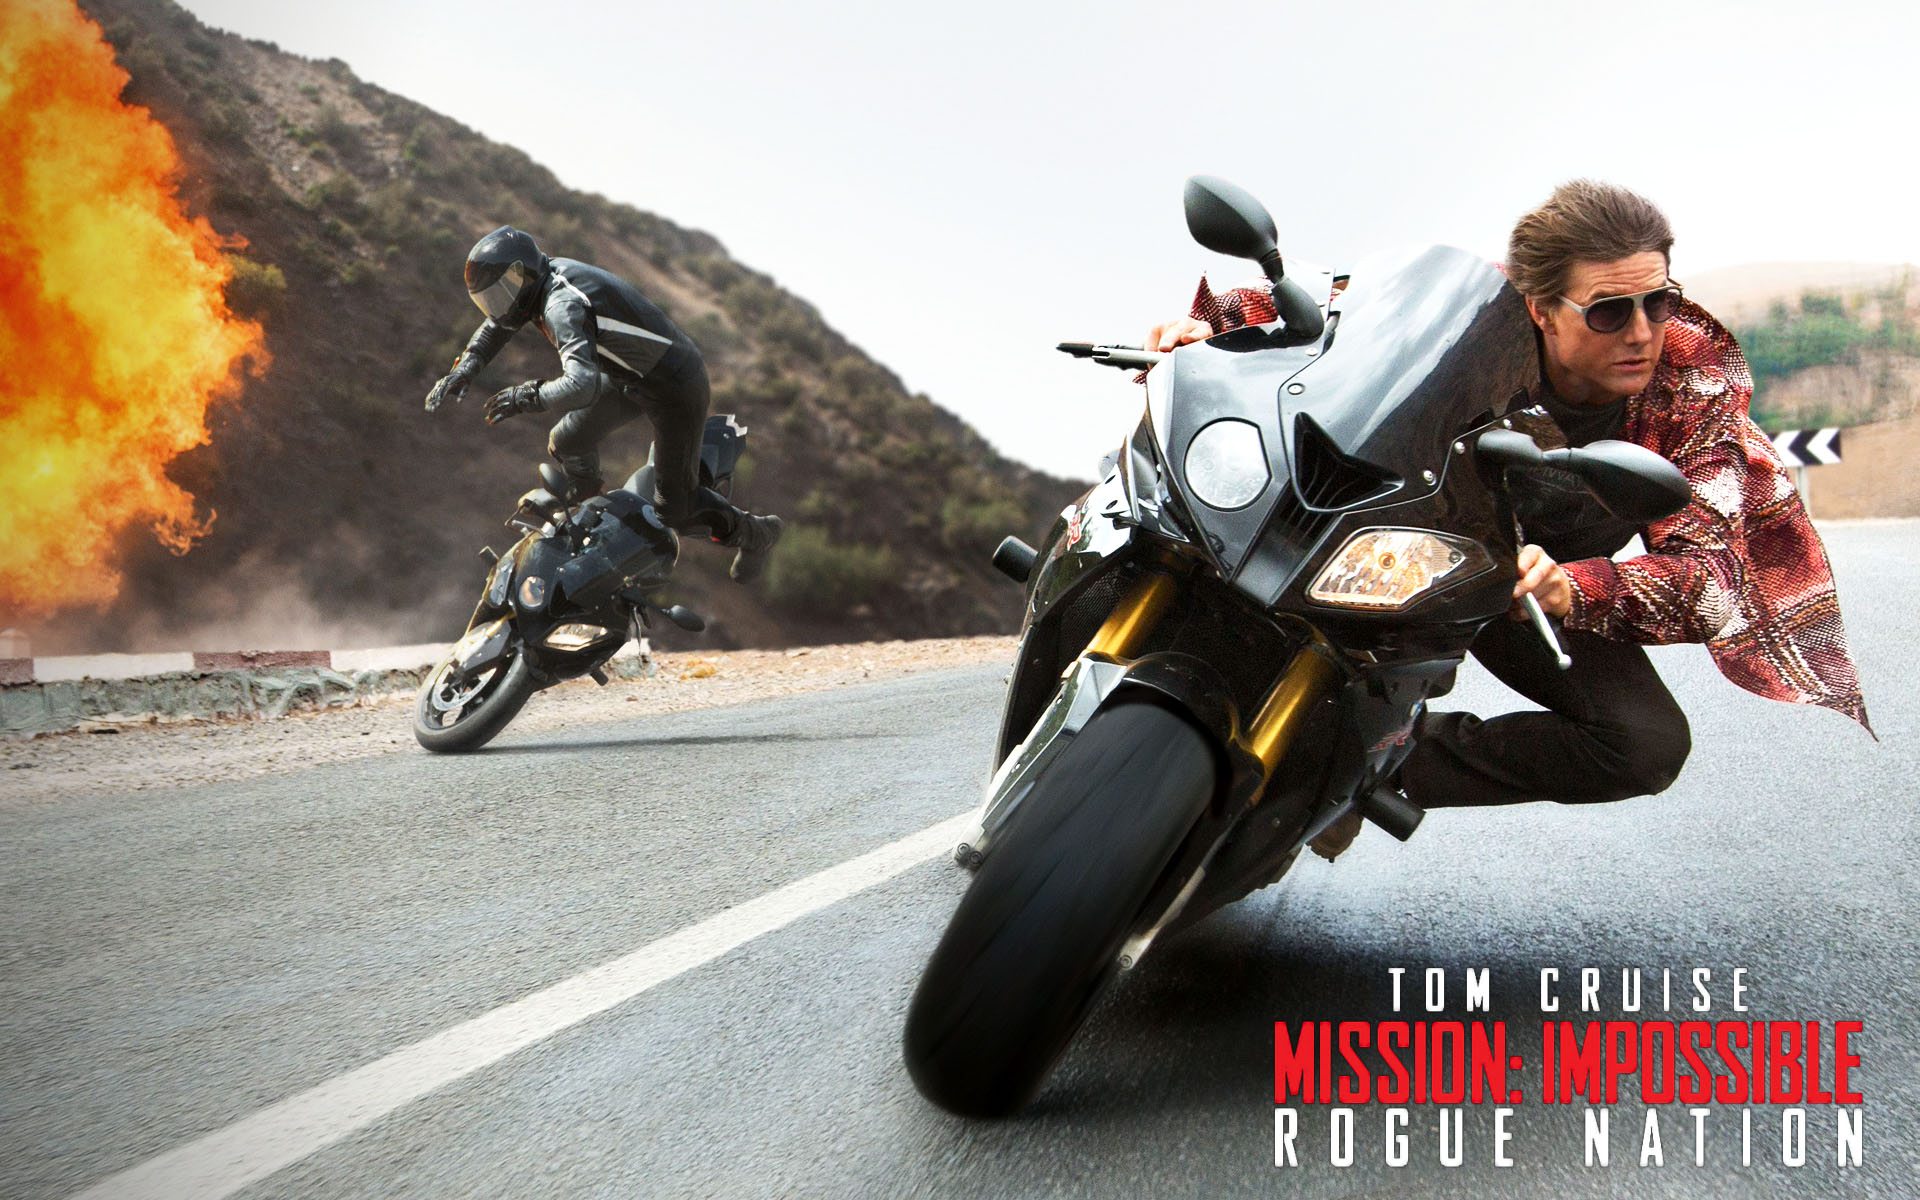 mission-impossible-rogue-nation-cover.jpg